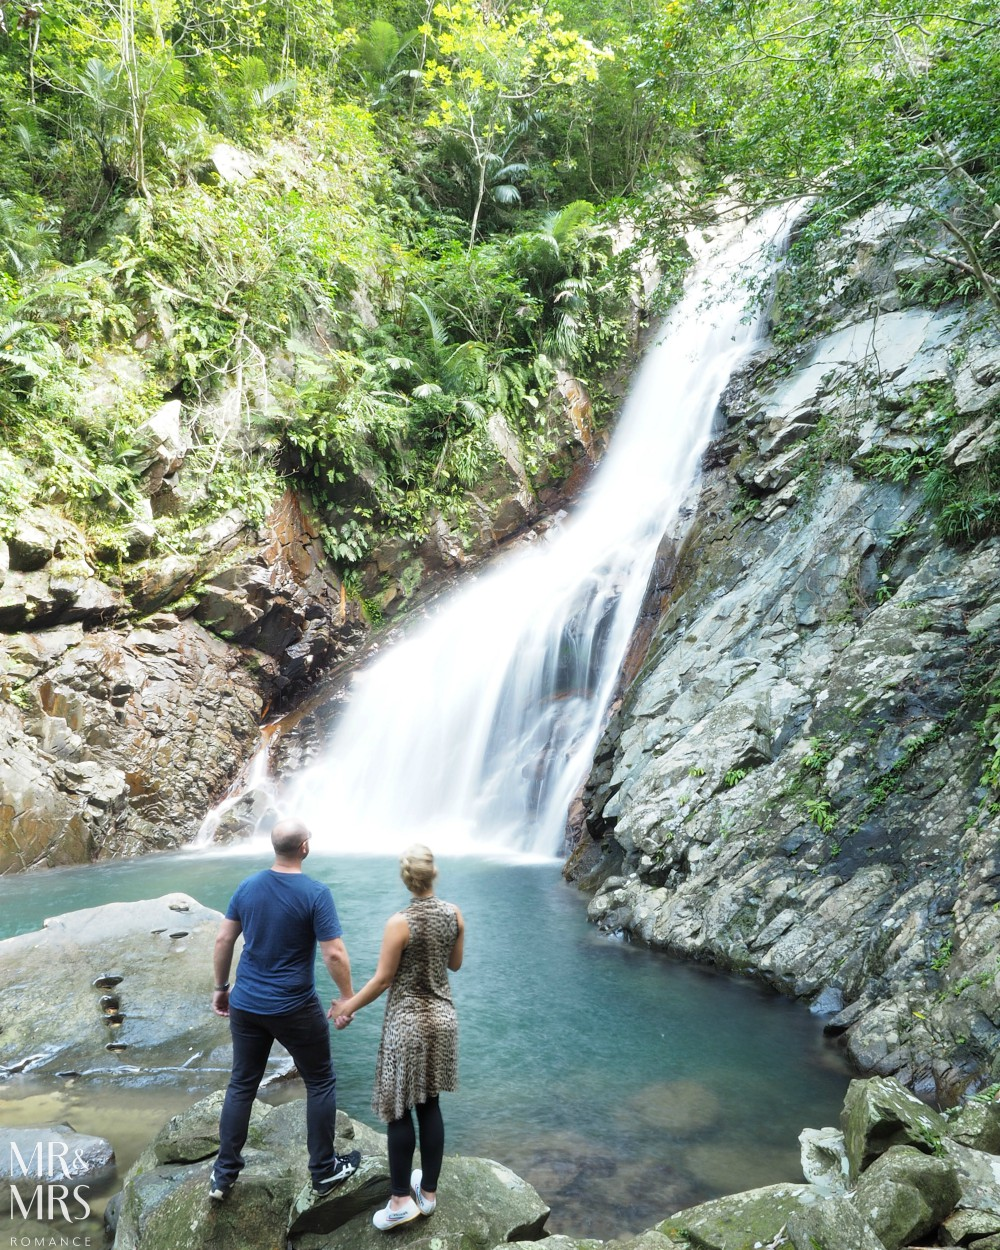 Power Spots, Okinawa, Japan - Mr & Mrs Romance - Hiji Waterfall MMR